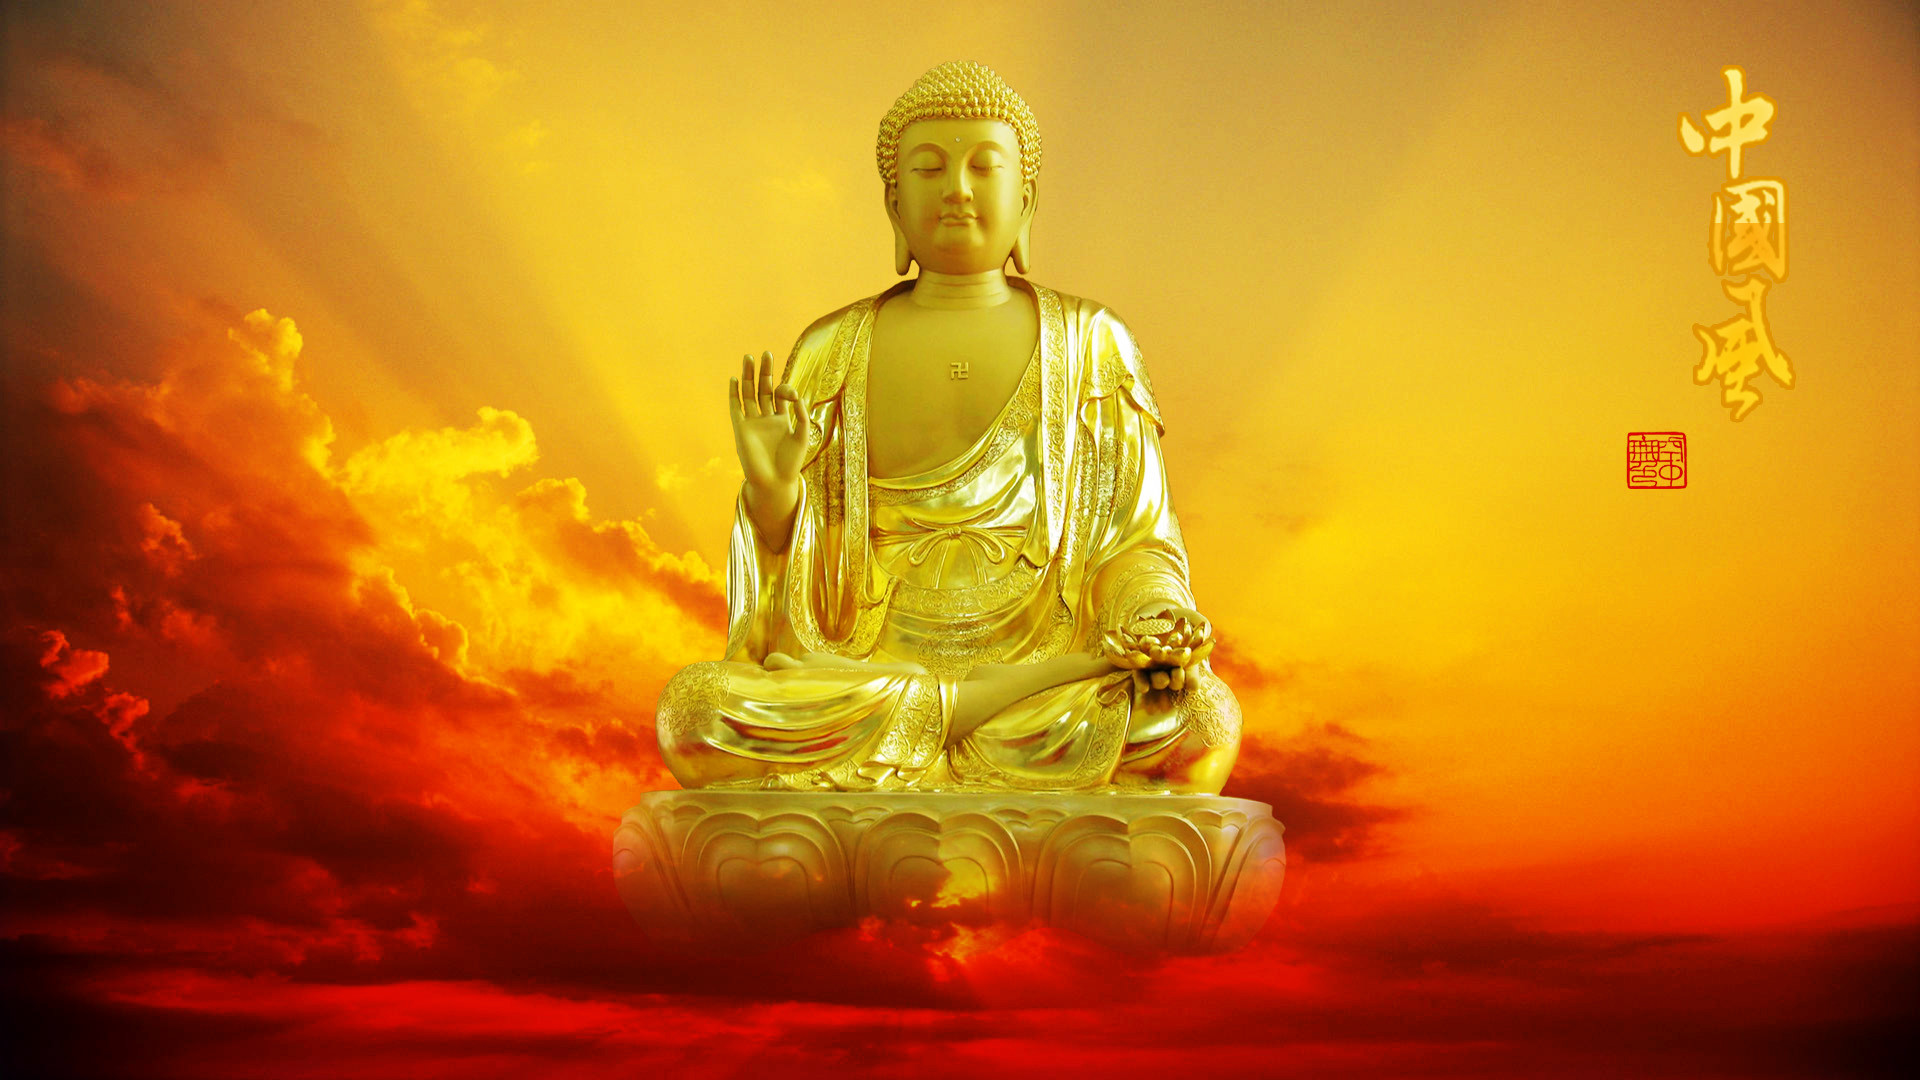 1920x1080 Lord Buddha Wallpaper 11 Desktop Hd Wallpapers For